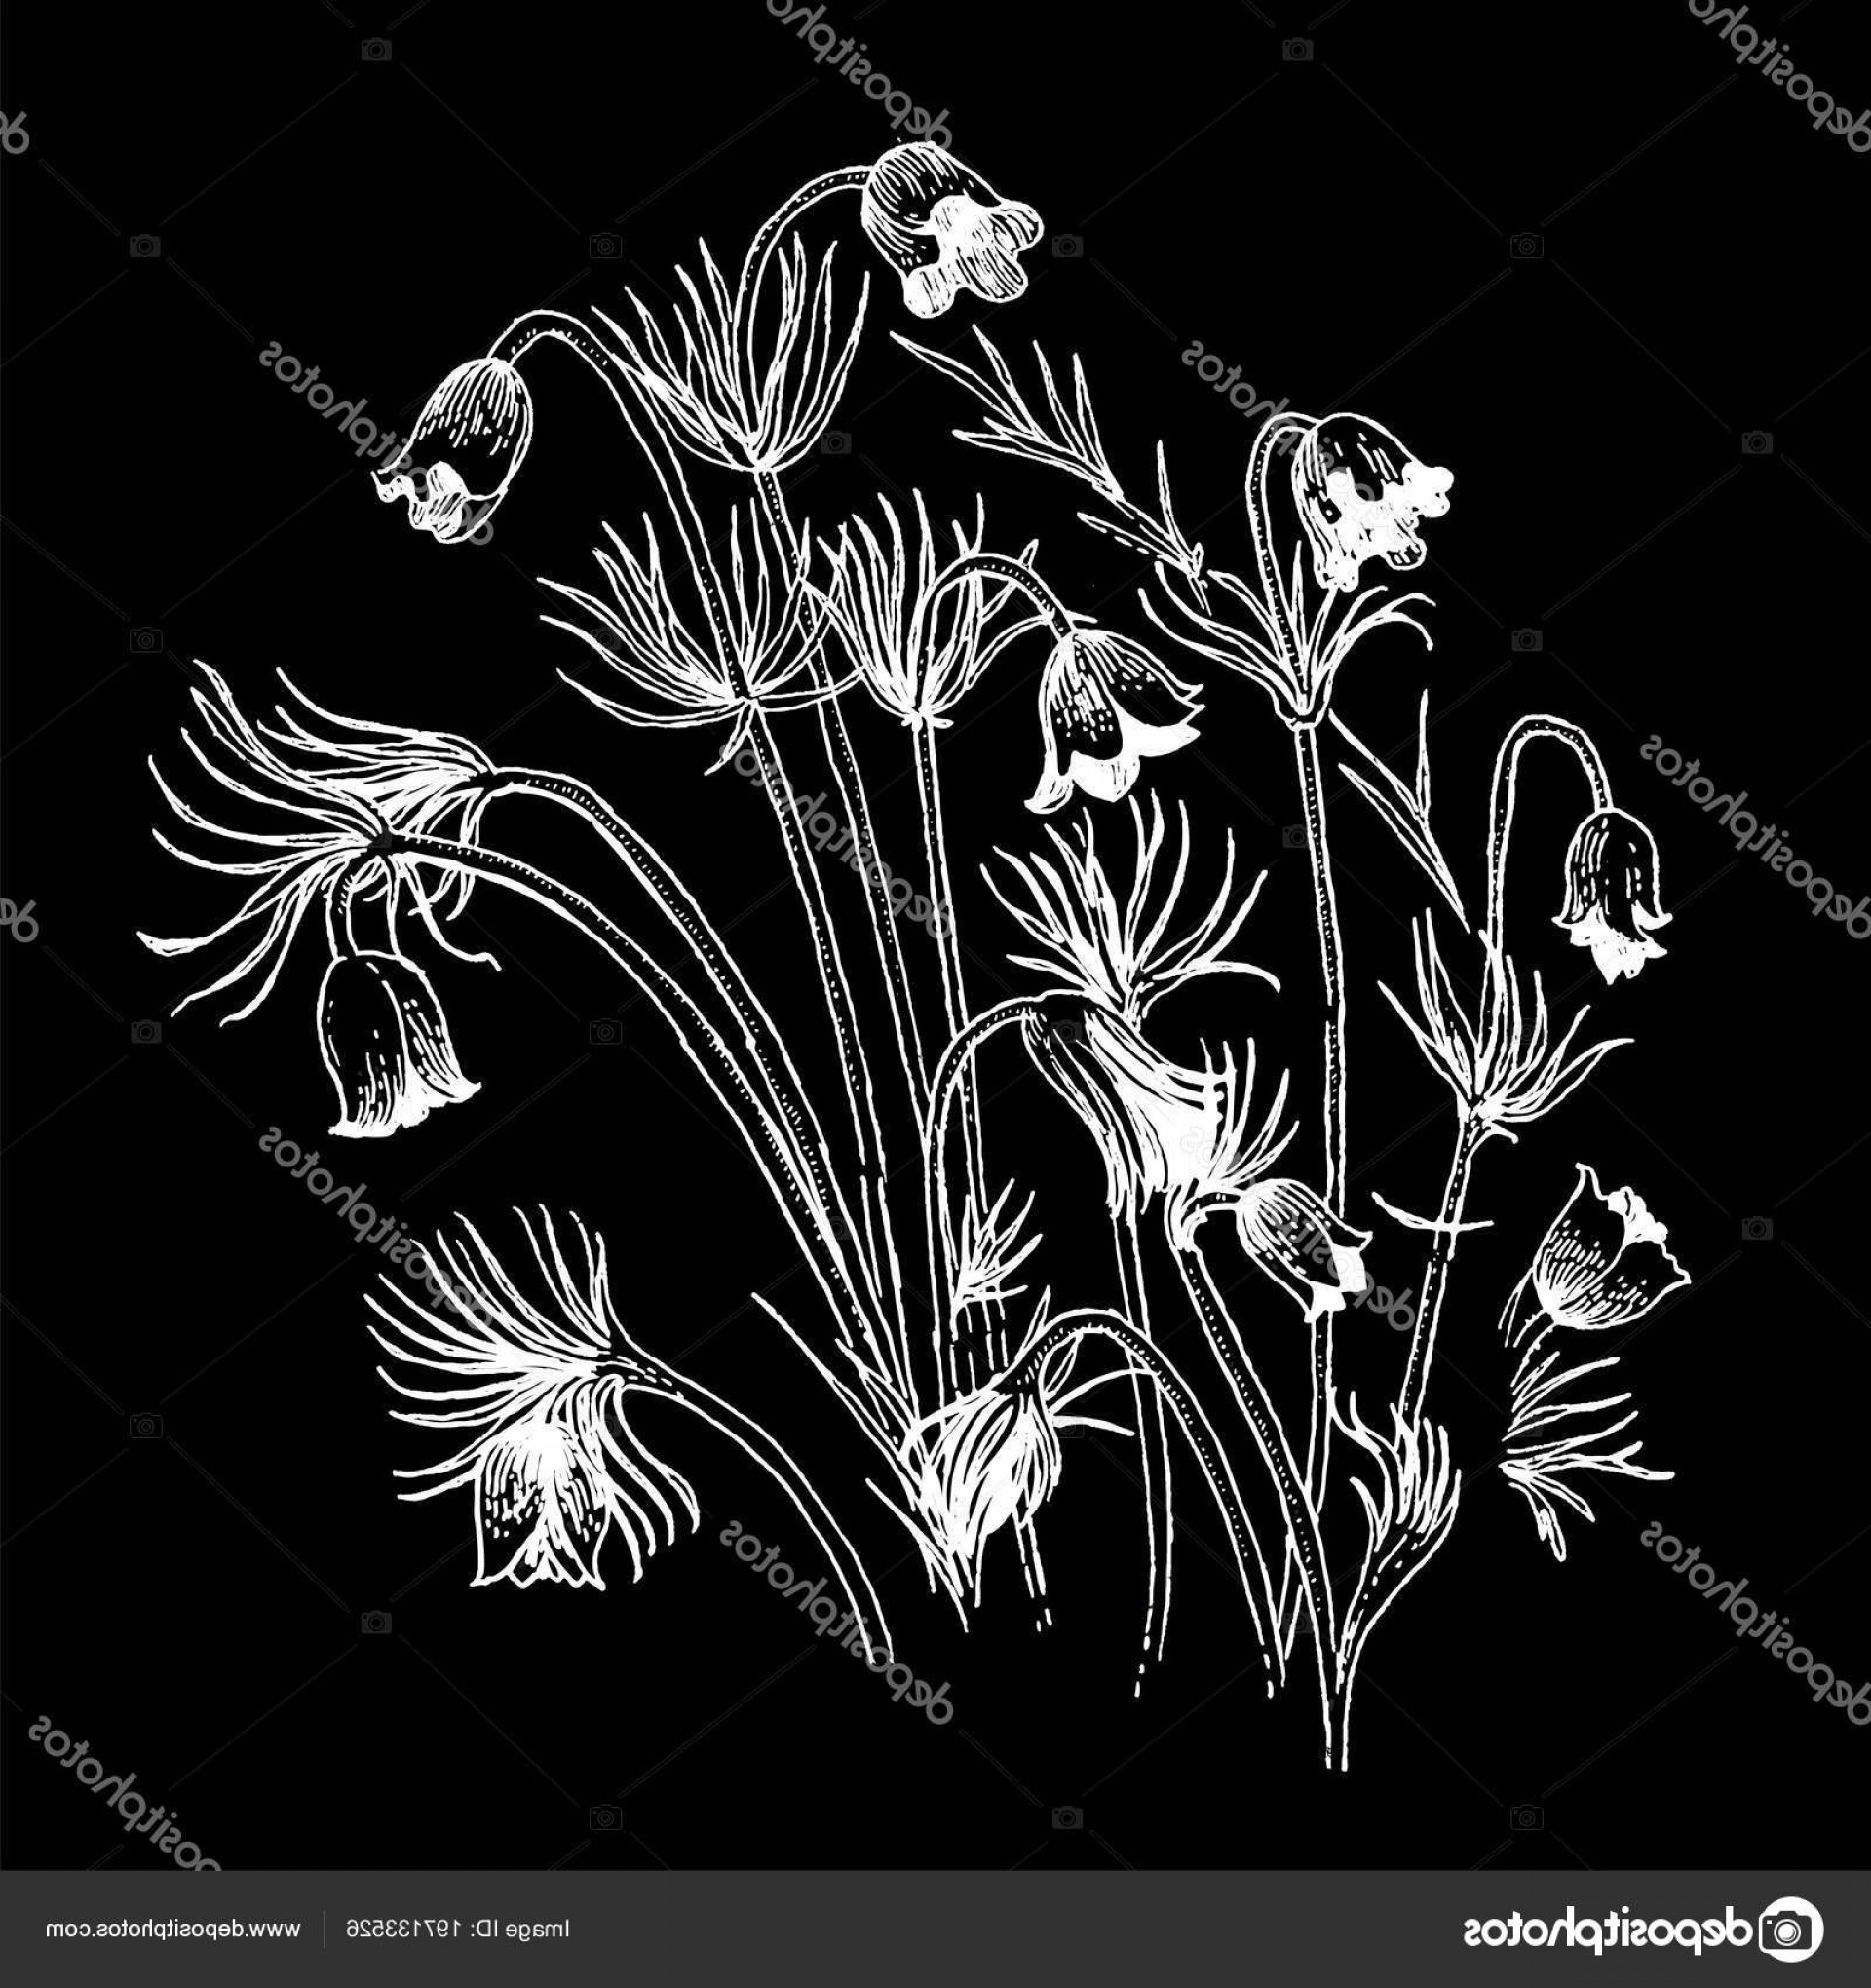 Wildflowers Outline Vector: Stock Illustration Composition White Outline Wildflowers Black